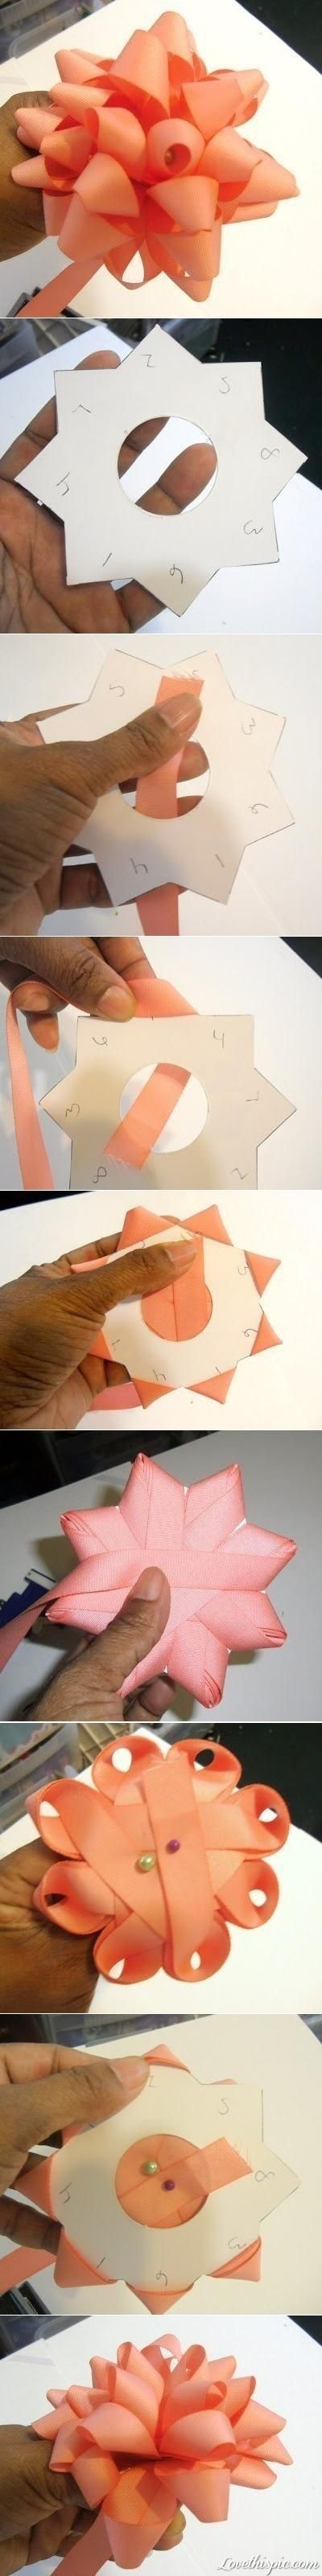 DIY Bow Ribbon Pictures, Photos, and Images for Facebook, Tumblr, Pinterest, and Twitter